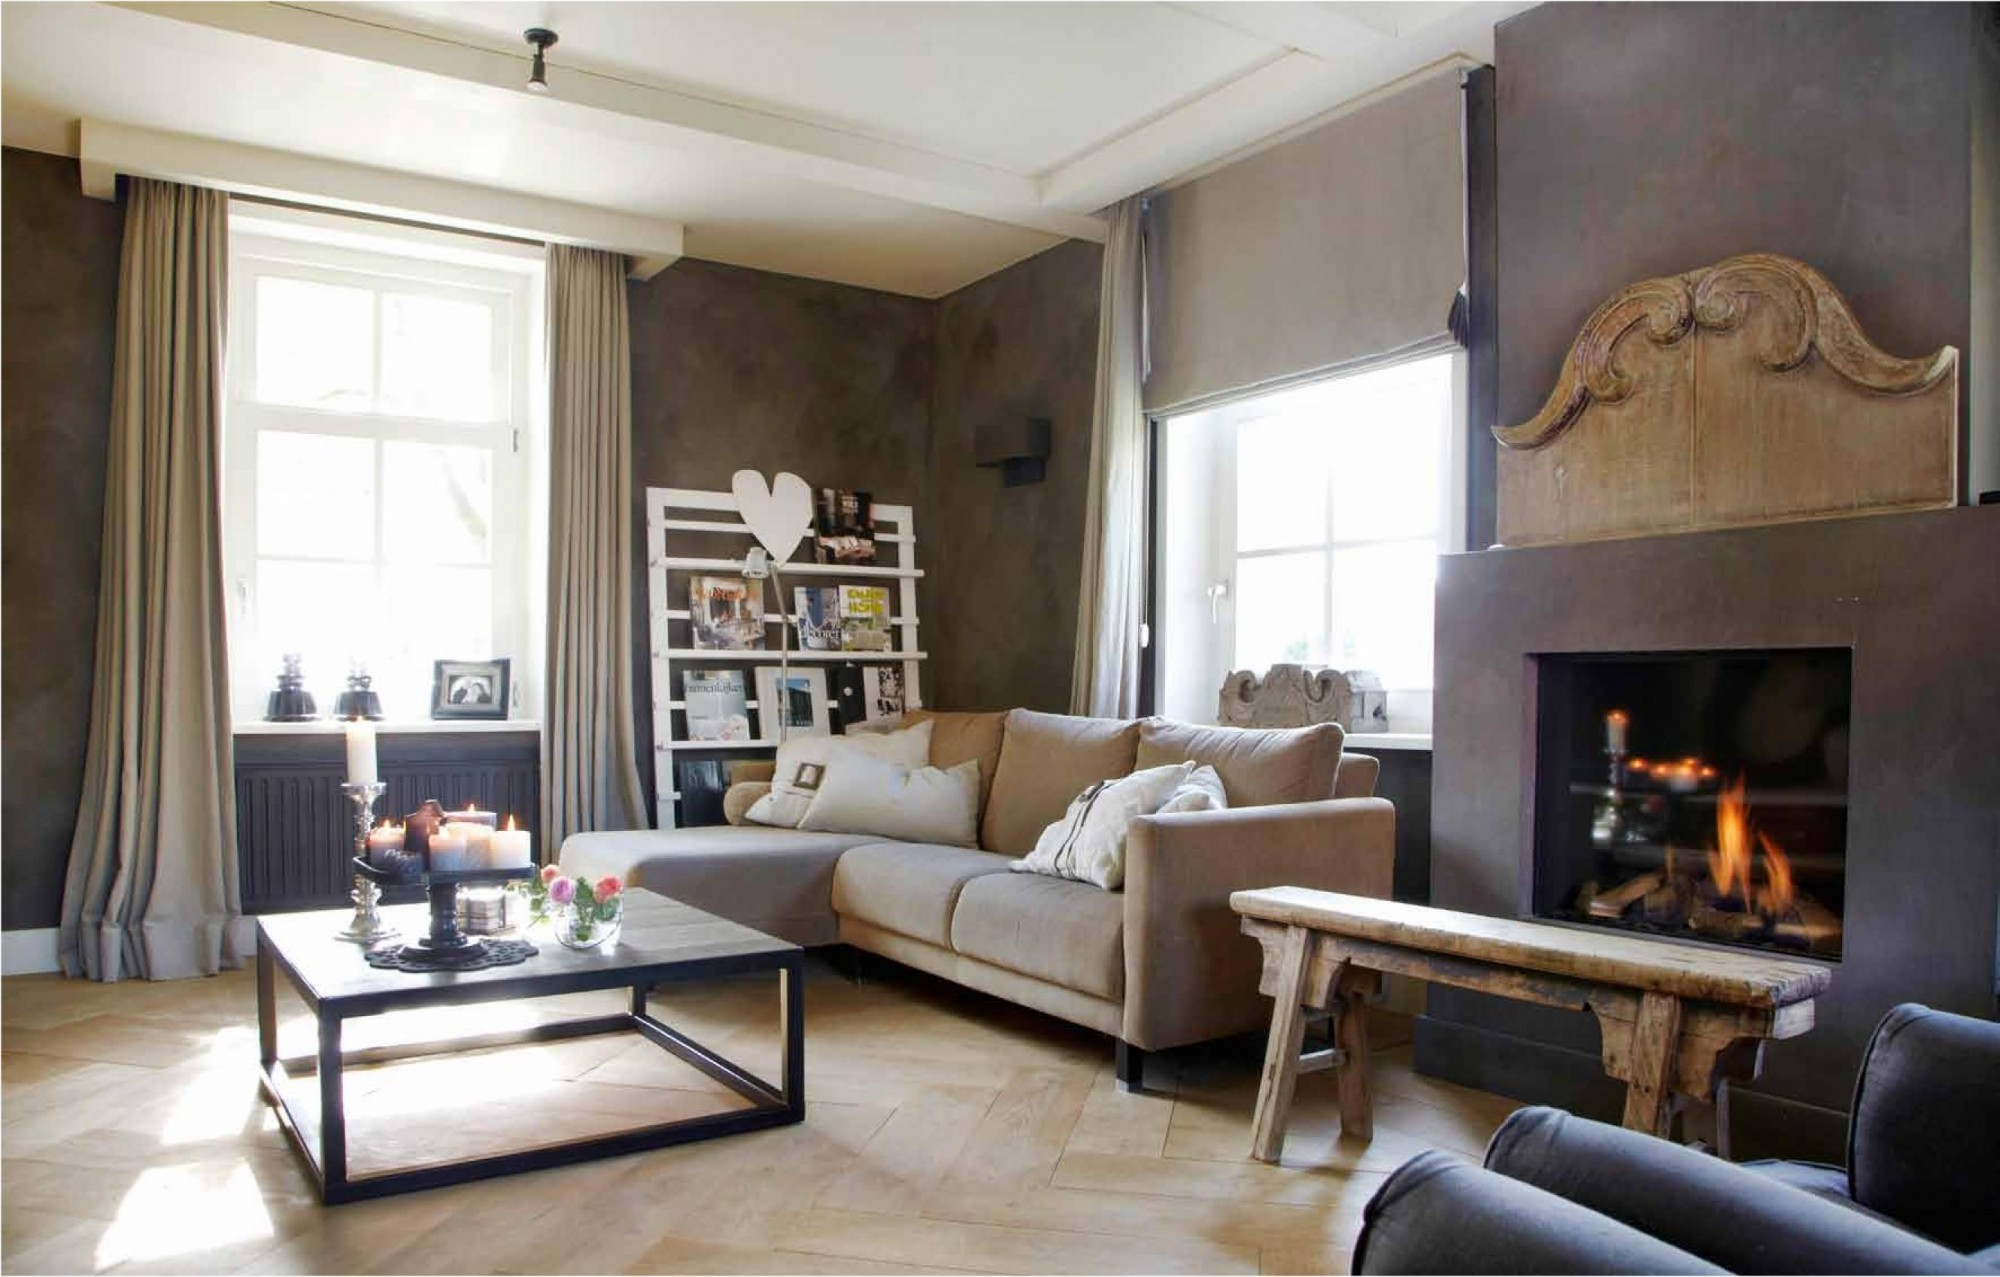 Best Stoere Woonkamer Images - Trend Ideas 2018 - localcateringblog.com